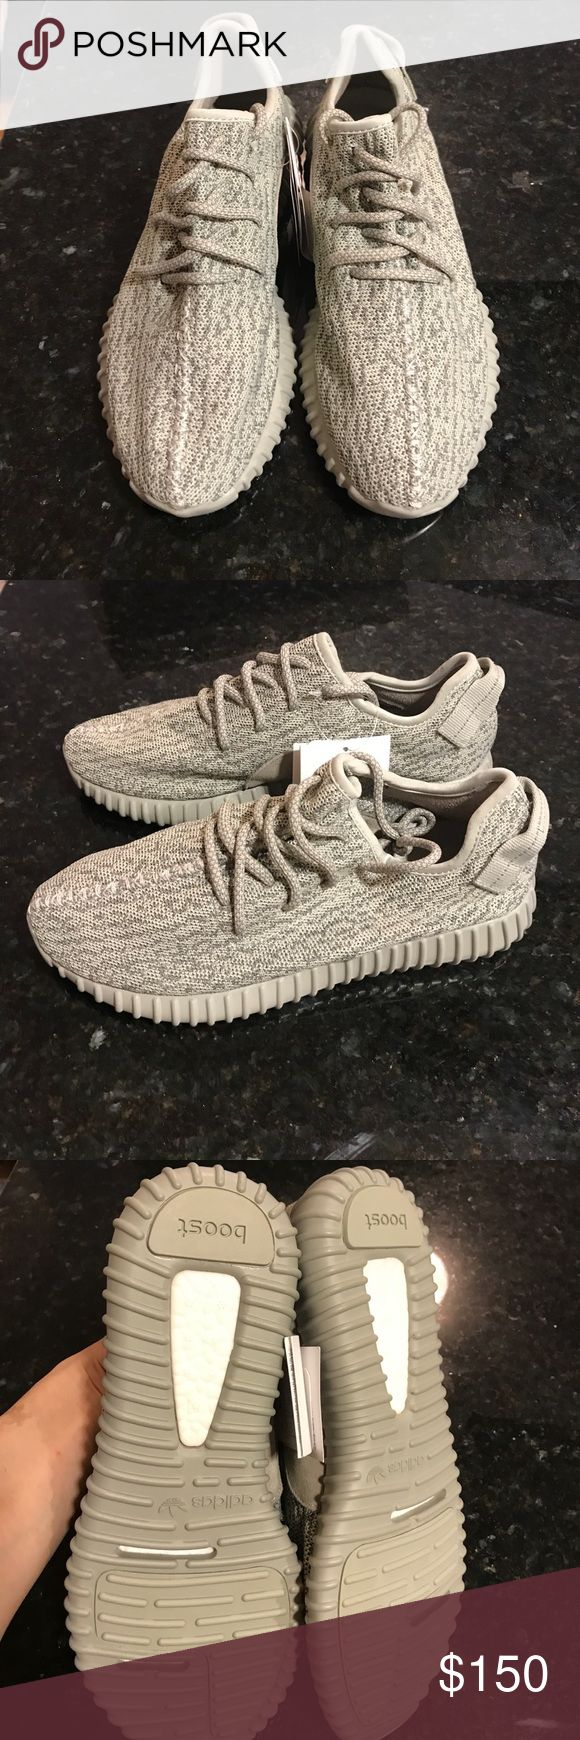 Yeezy boost 350 moon rock brand new Size 8. These are UA version, hence the price. adidas Shoes Sneakers